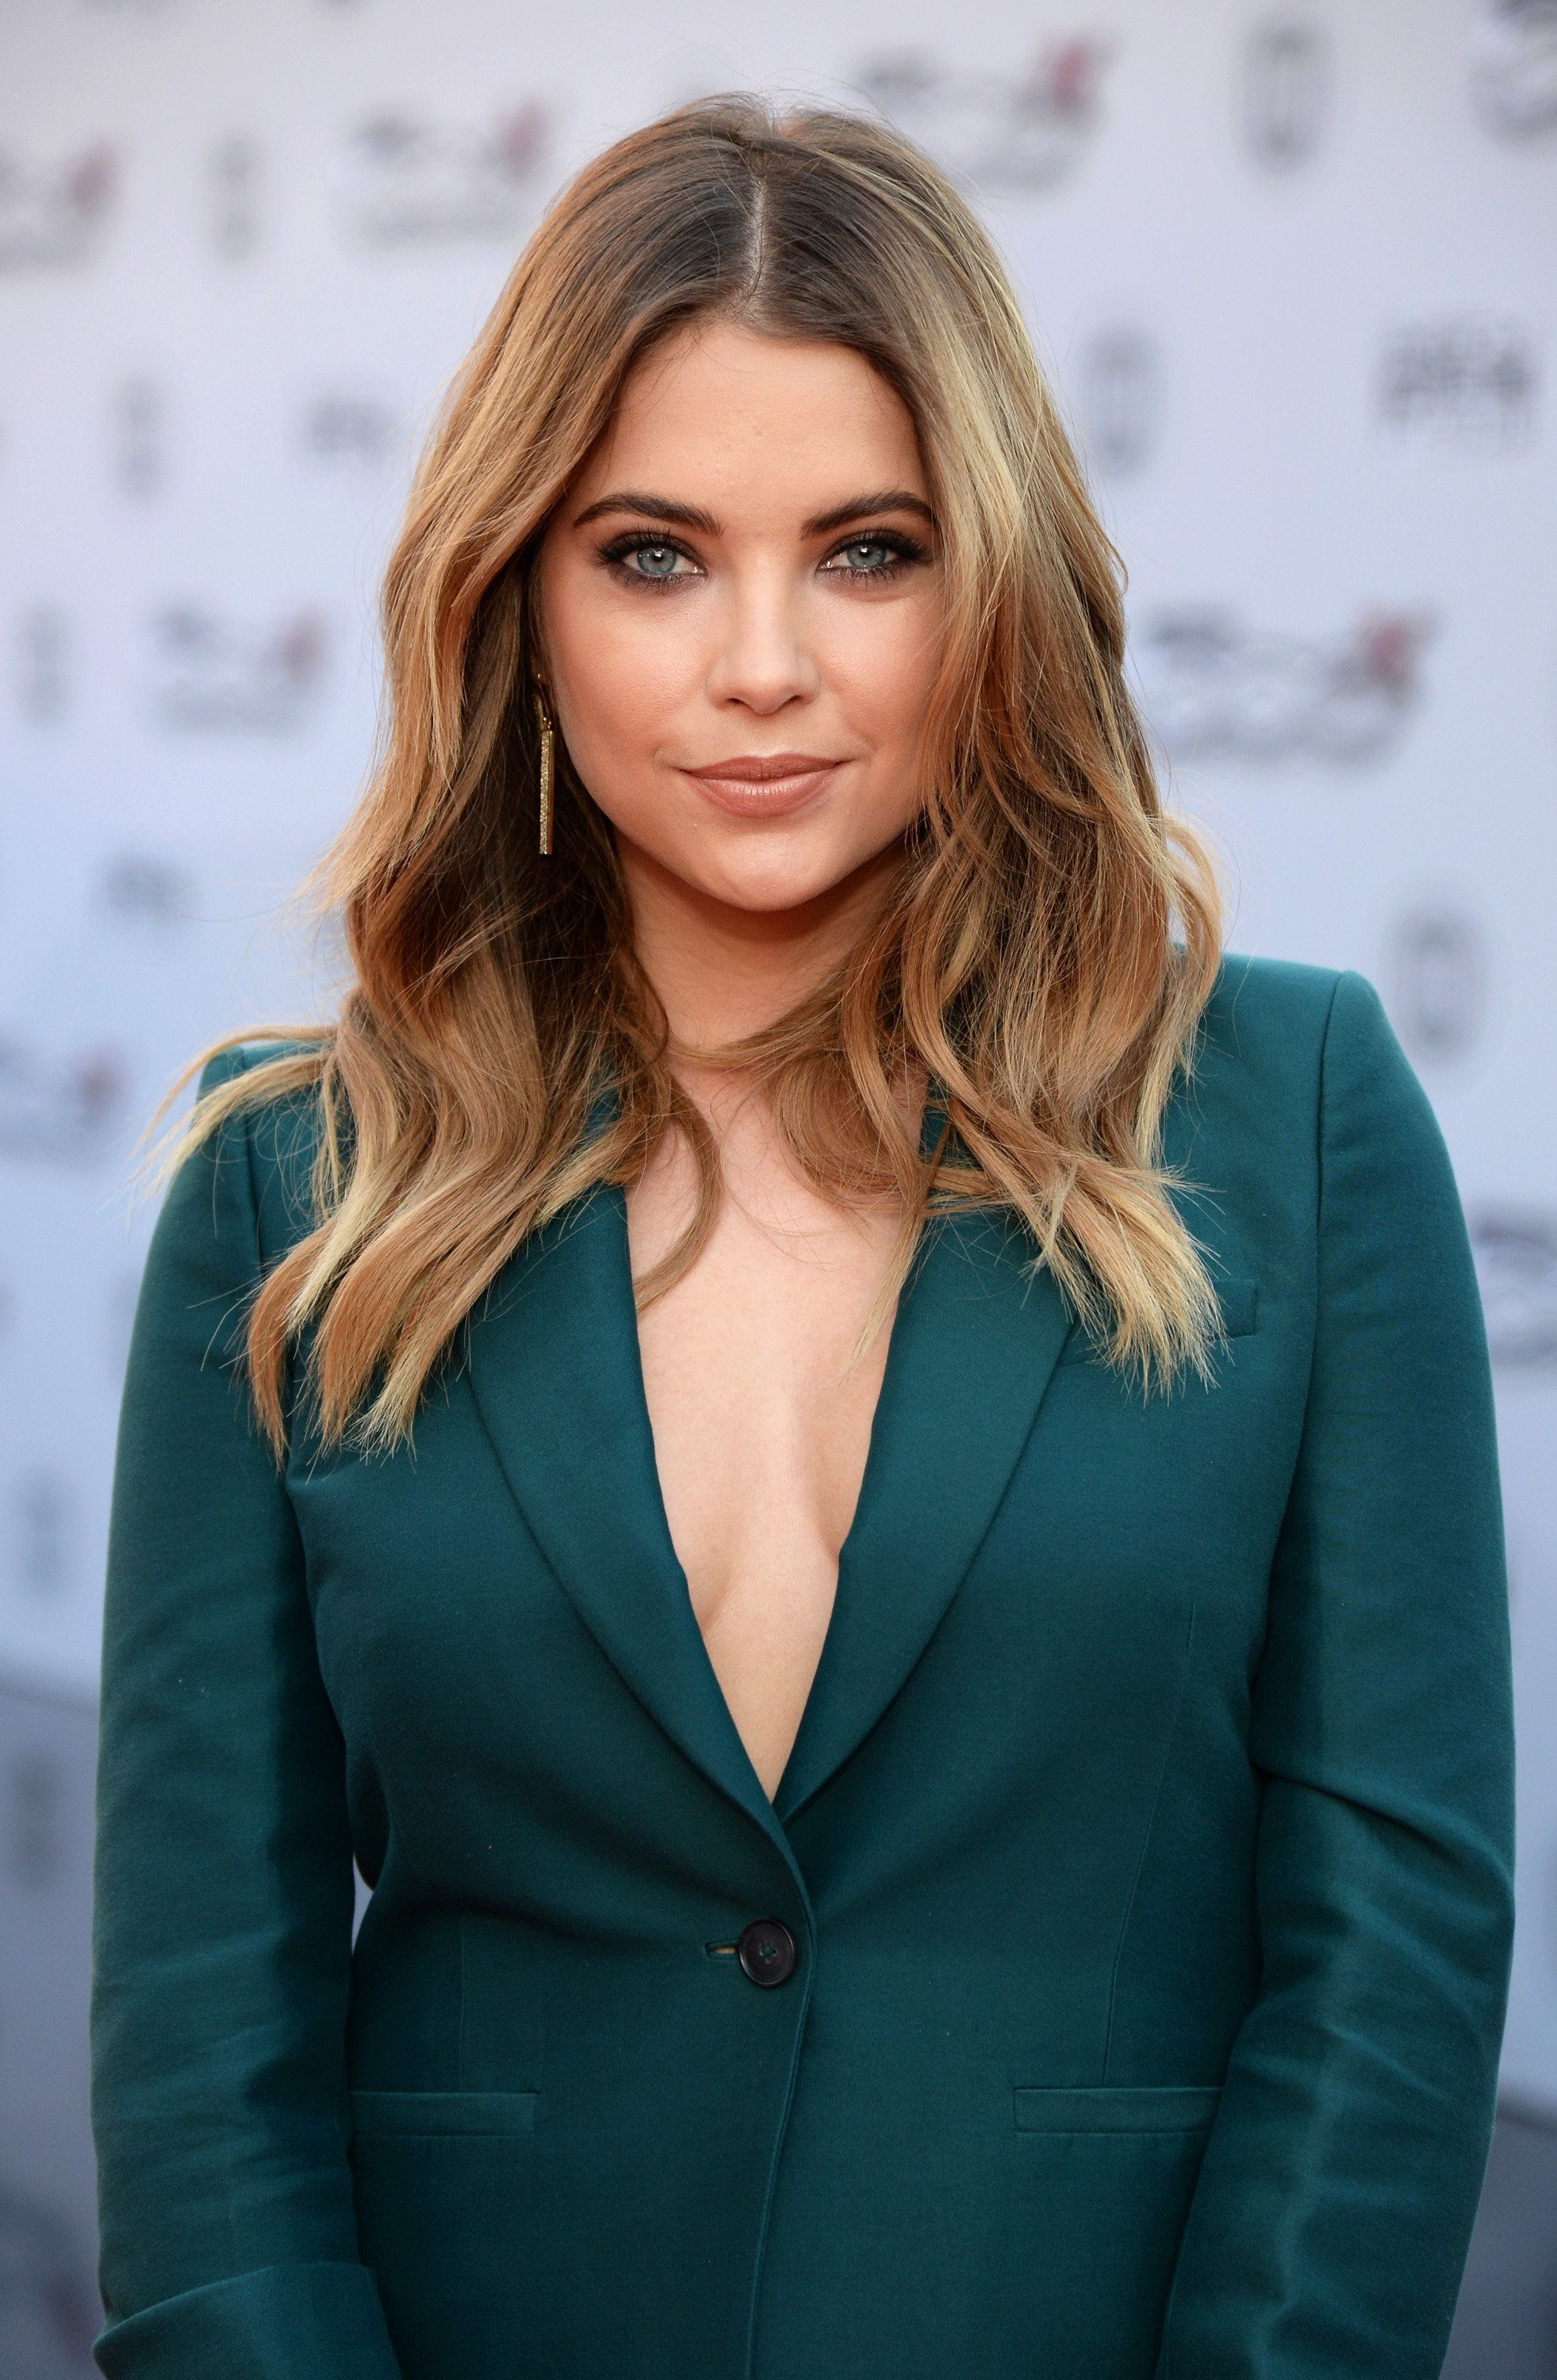 LOS ANGELES, CA - NOVEMBER 22:  Actress Ashley Benson attends the 2015 American Music Awards red carpet arrivals sponsored by FIAT 500X at LA Live on November 22, 2015 in Los Angeles, California.  (Photo by Michael Kovac/AMA2015/Getty Images for FIAT)